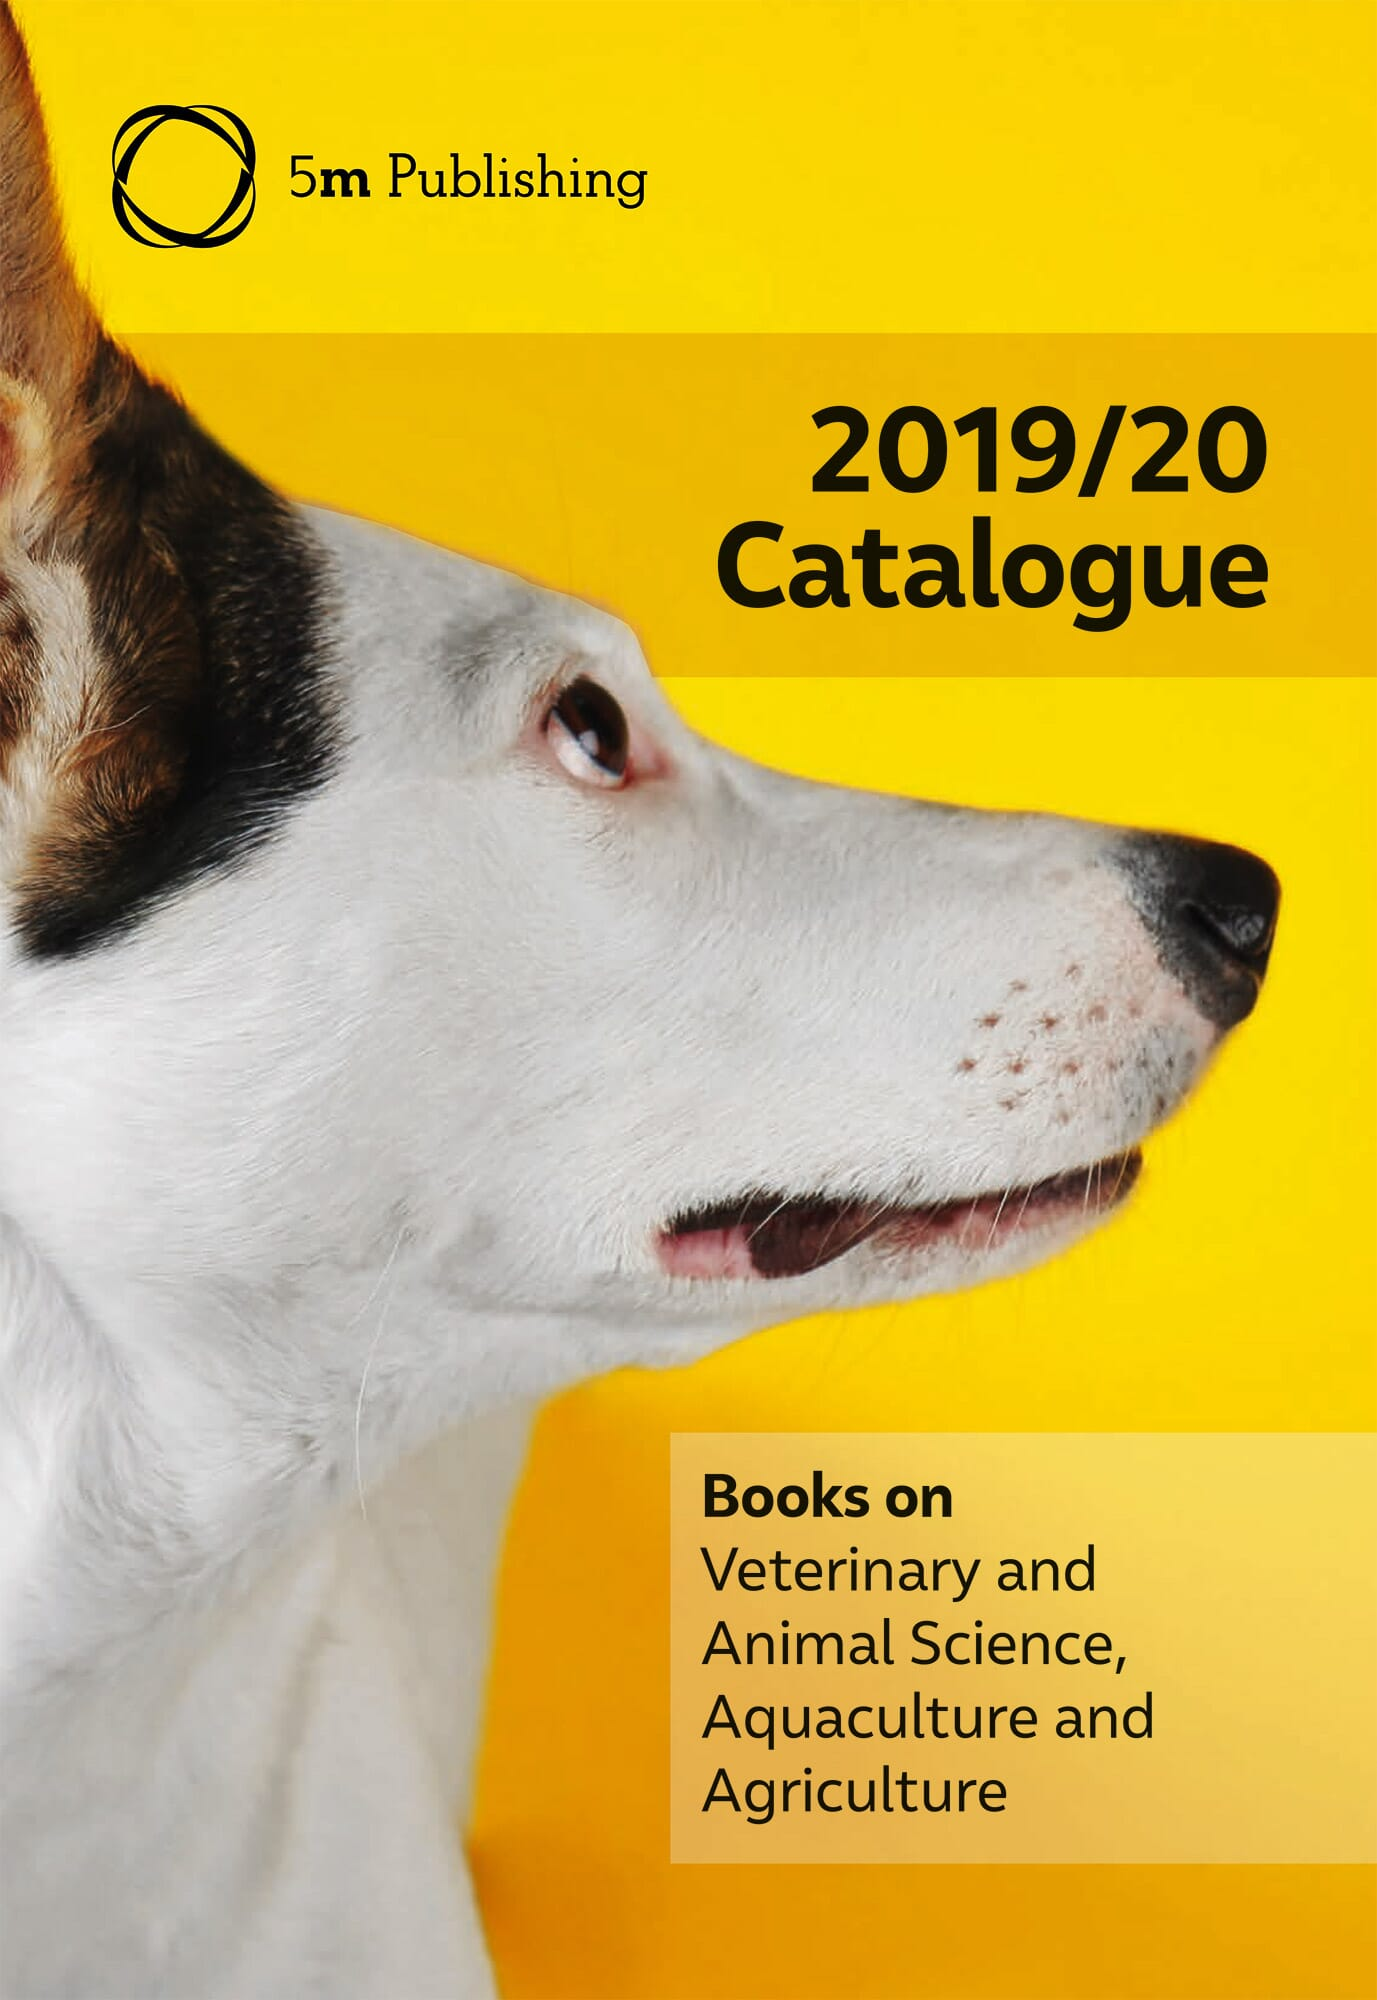 5m Books 2018/19 Catalogue